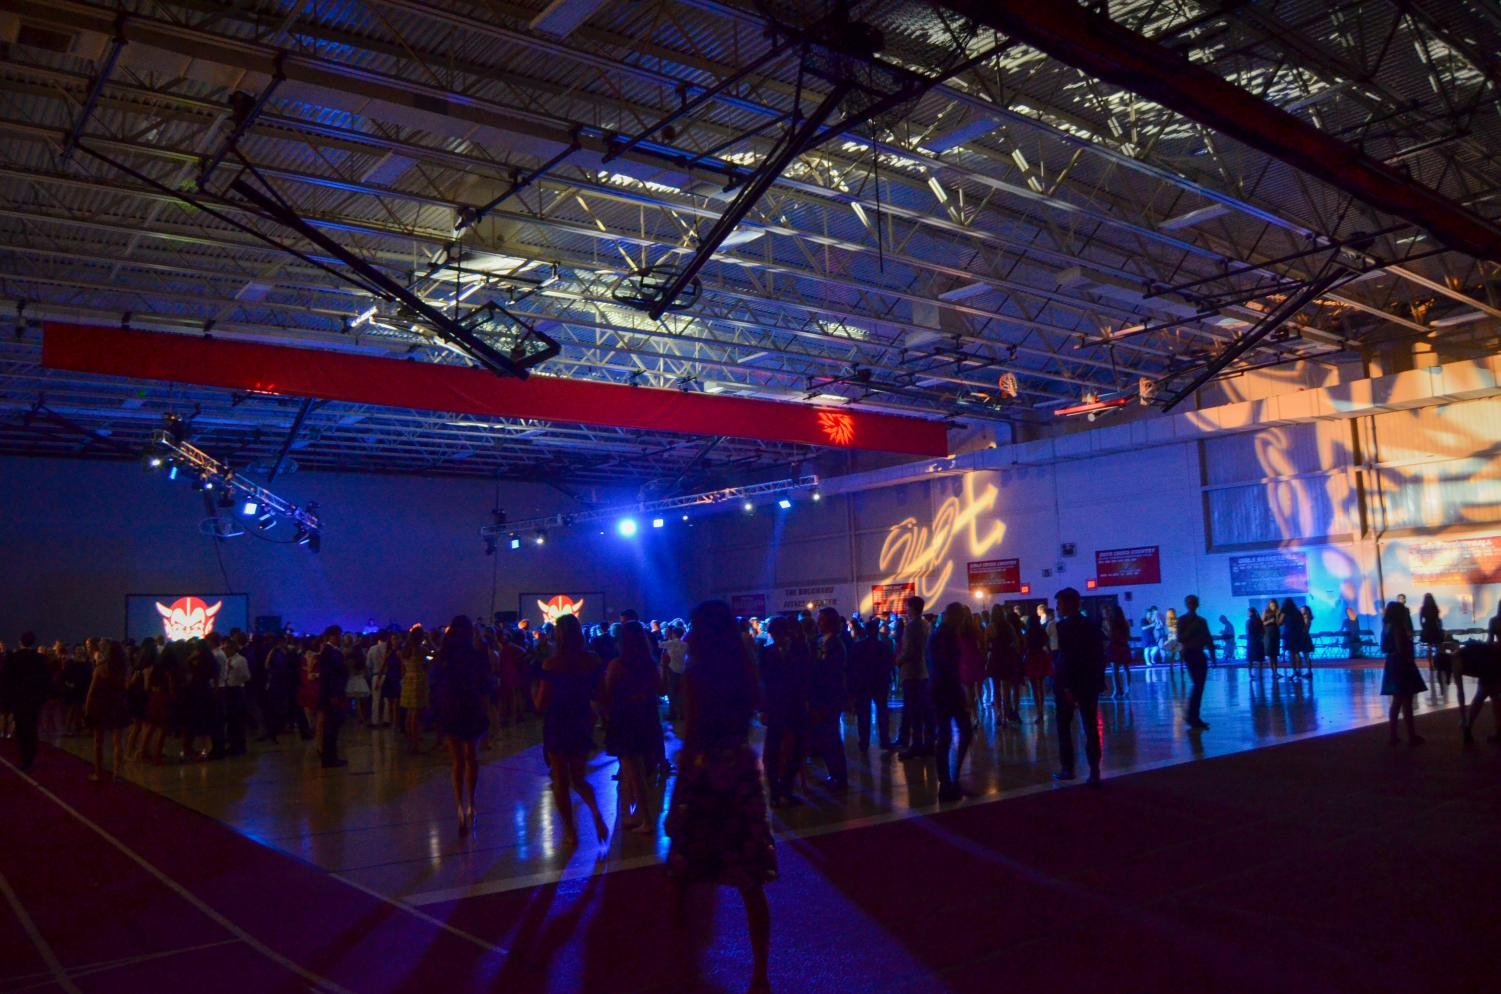 On Saturday, Sept. 22 Homecoming was held in the field house.